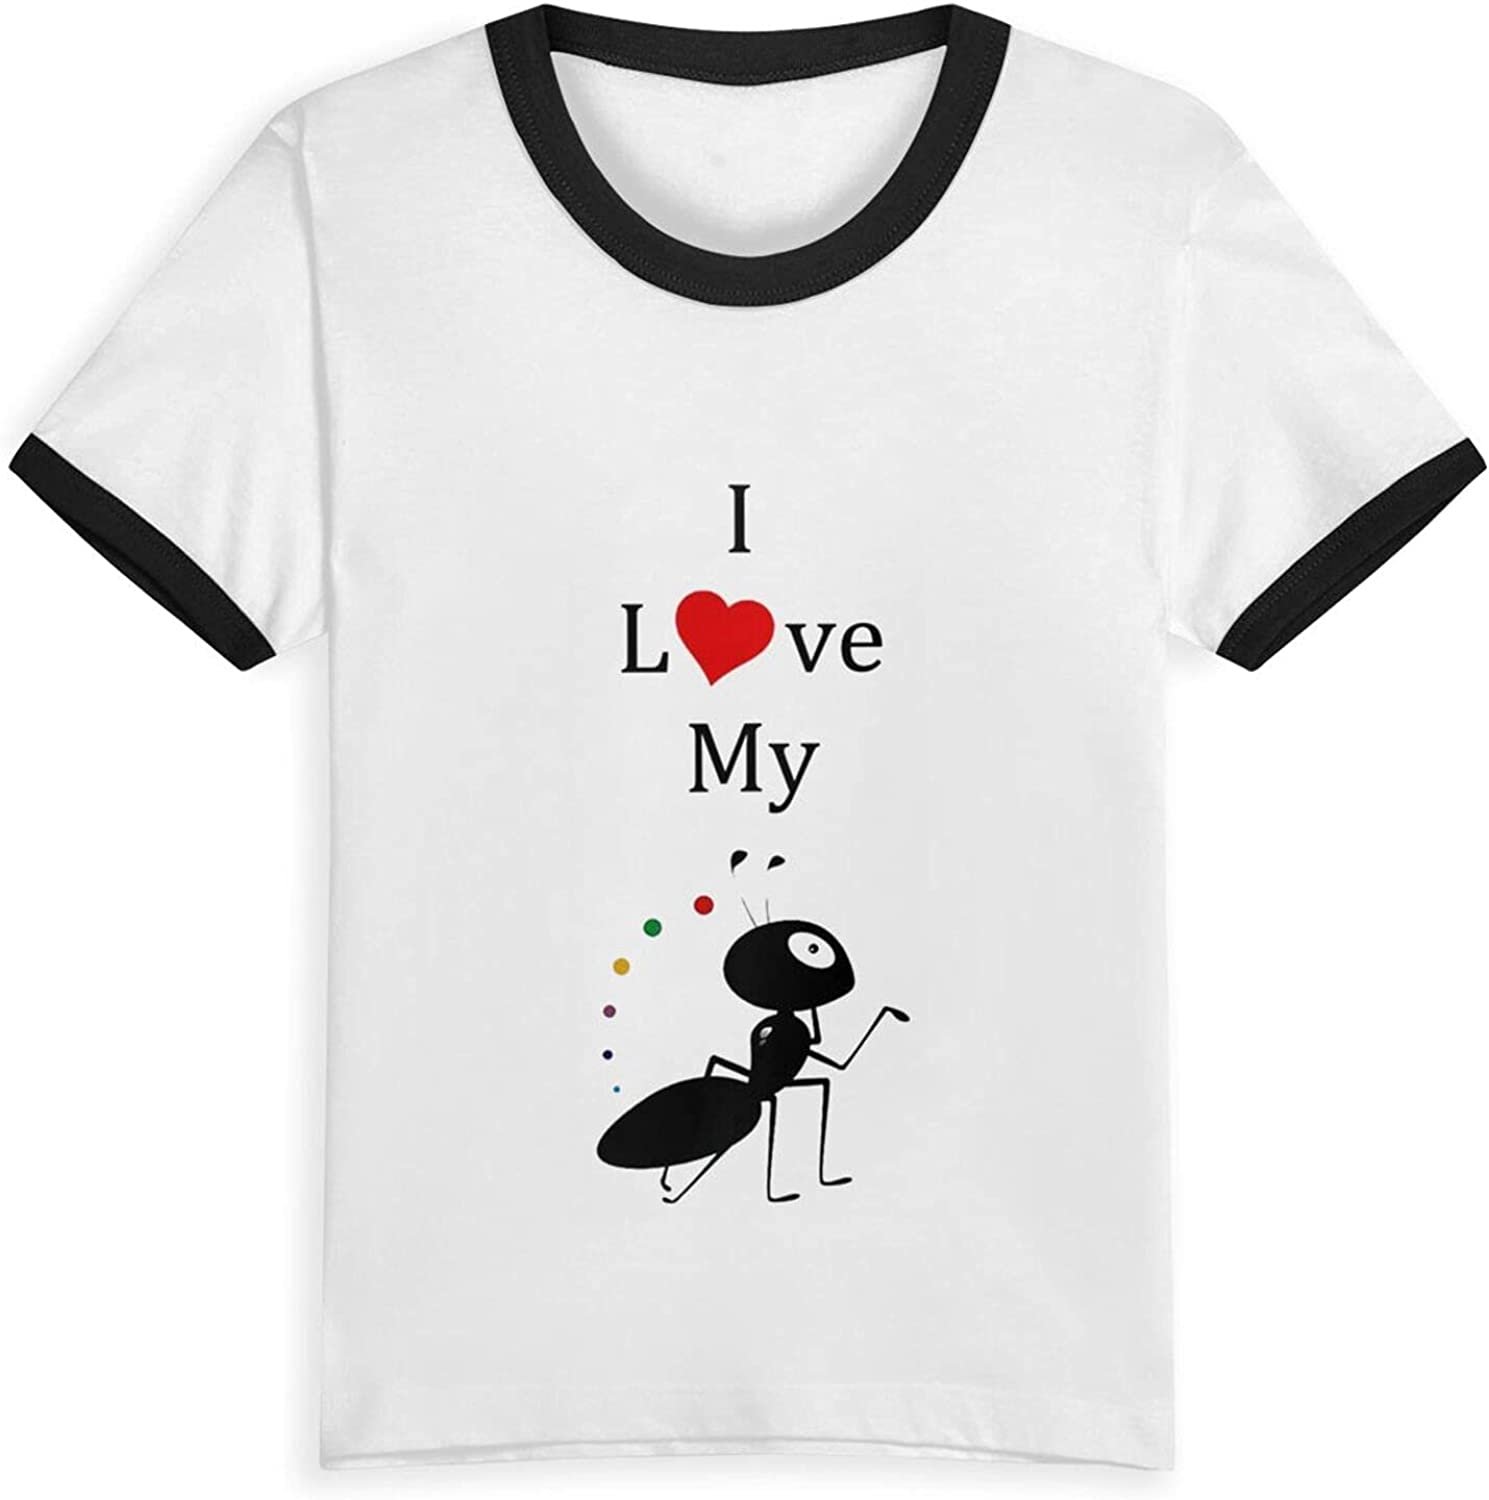 I Love My Ant - Aunt Boys Girls Shirts Funny Kids Short Sleeve T-Shirt Tops Tees 2-5 Years